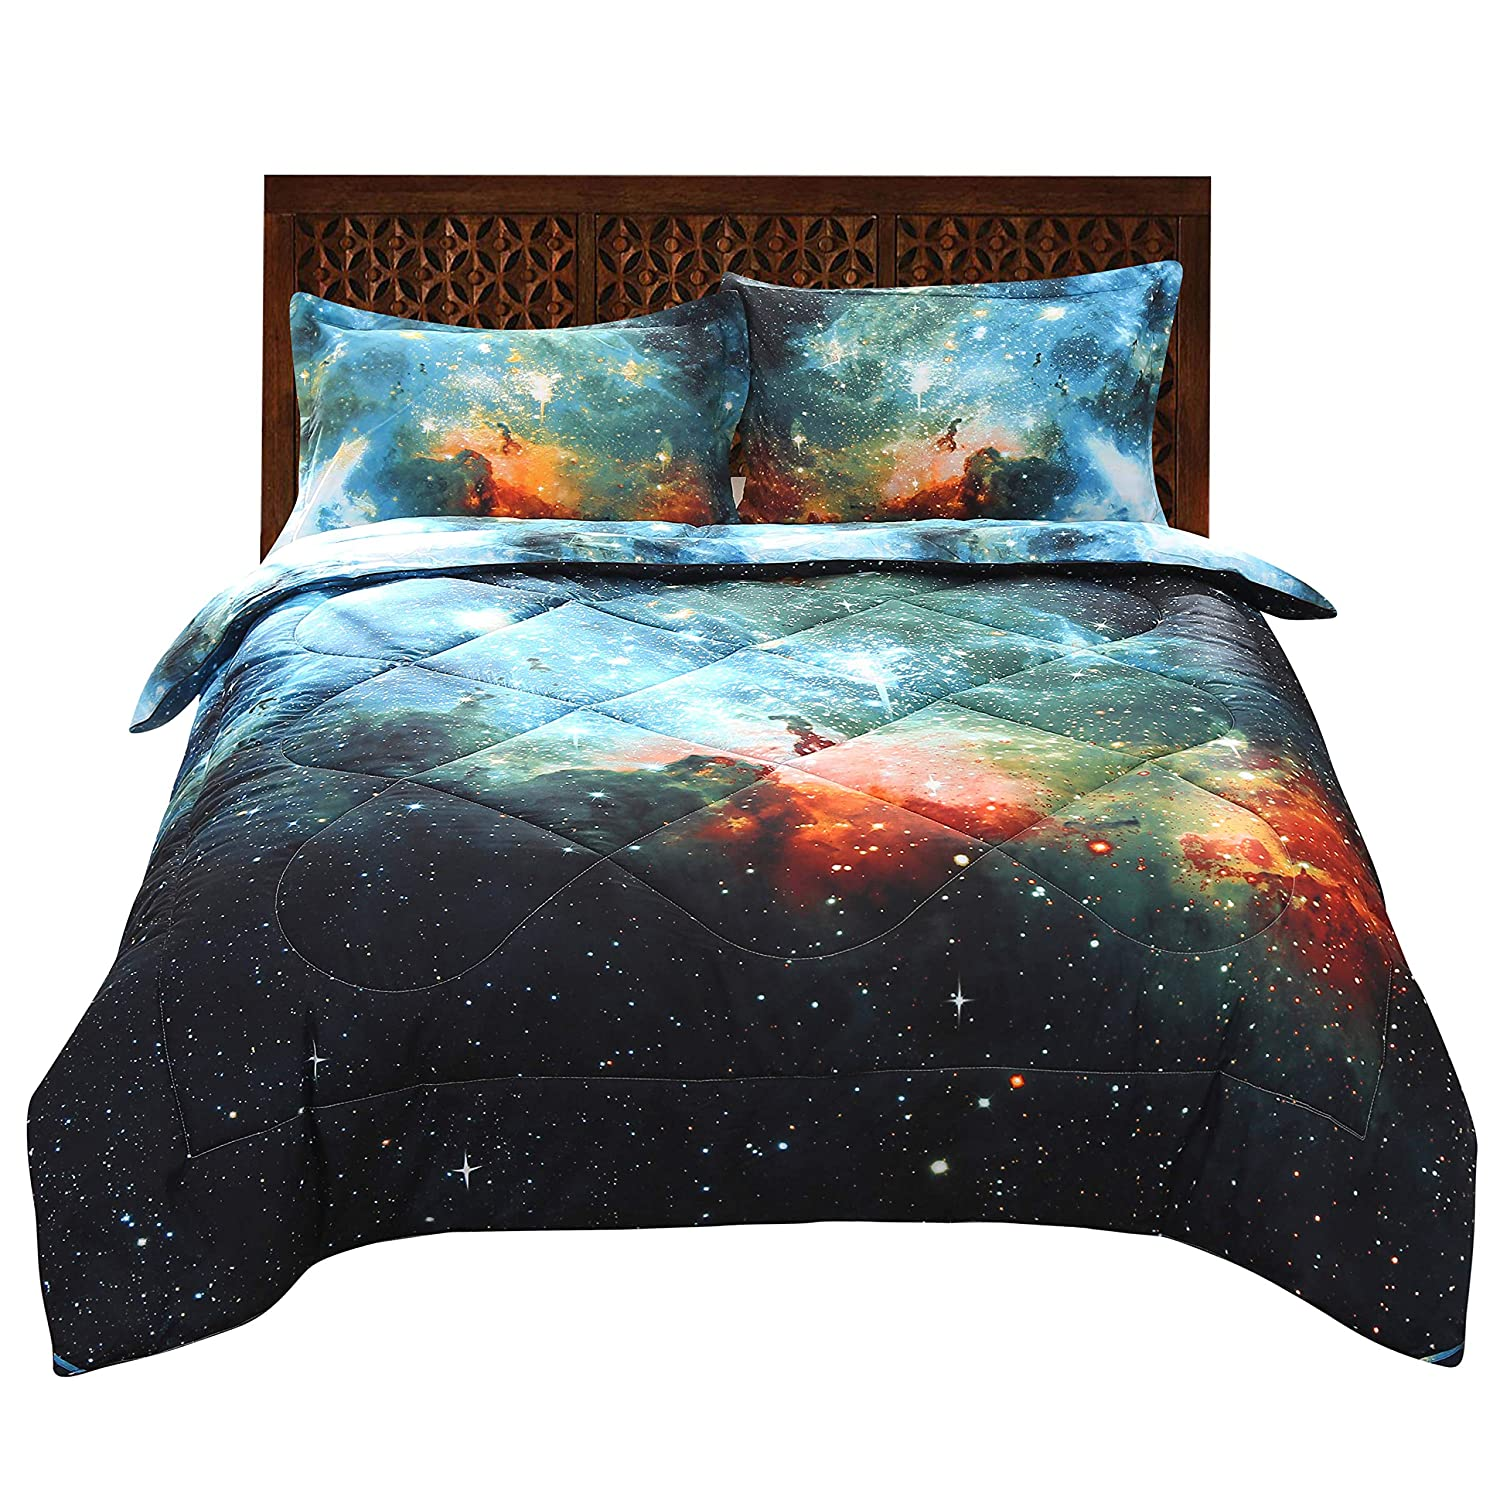 ENJOHOS Cool Galaxy Bedding for Kids 3D Universe Space Quilt Comforter Sets Twin Size Super Soft Starry Sky Bedding Gift for Boys and Girls (1Comforter 2 Pillow Shams)